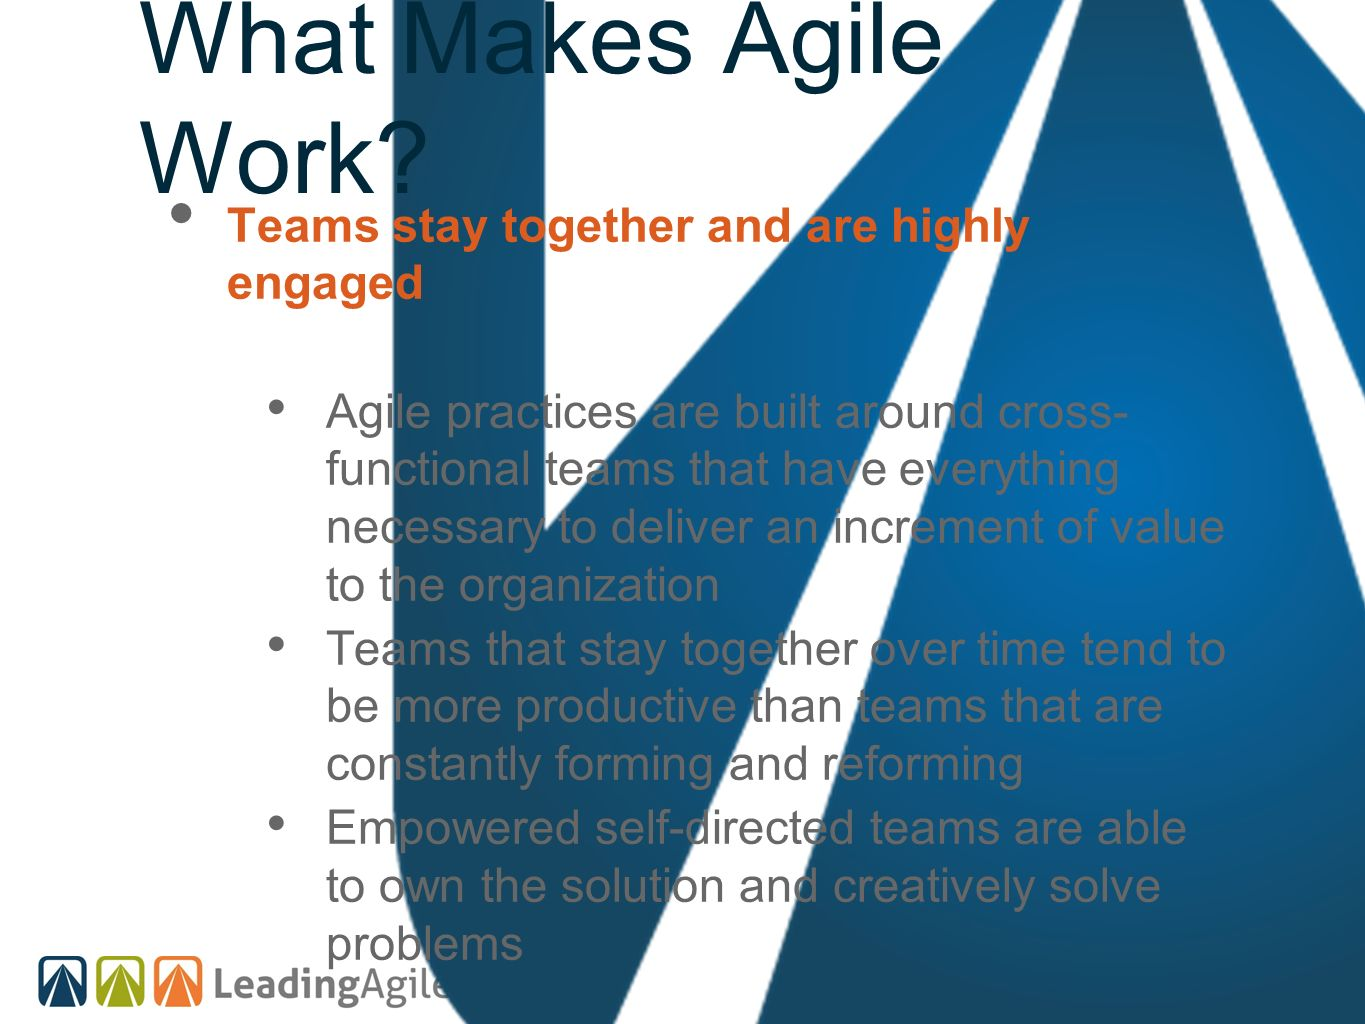 Teams stay together and are highly engaged Agile practices are built around cross- functional teams that have everything necessary to deliver an incre